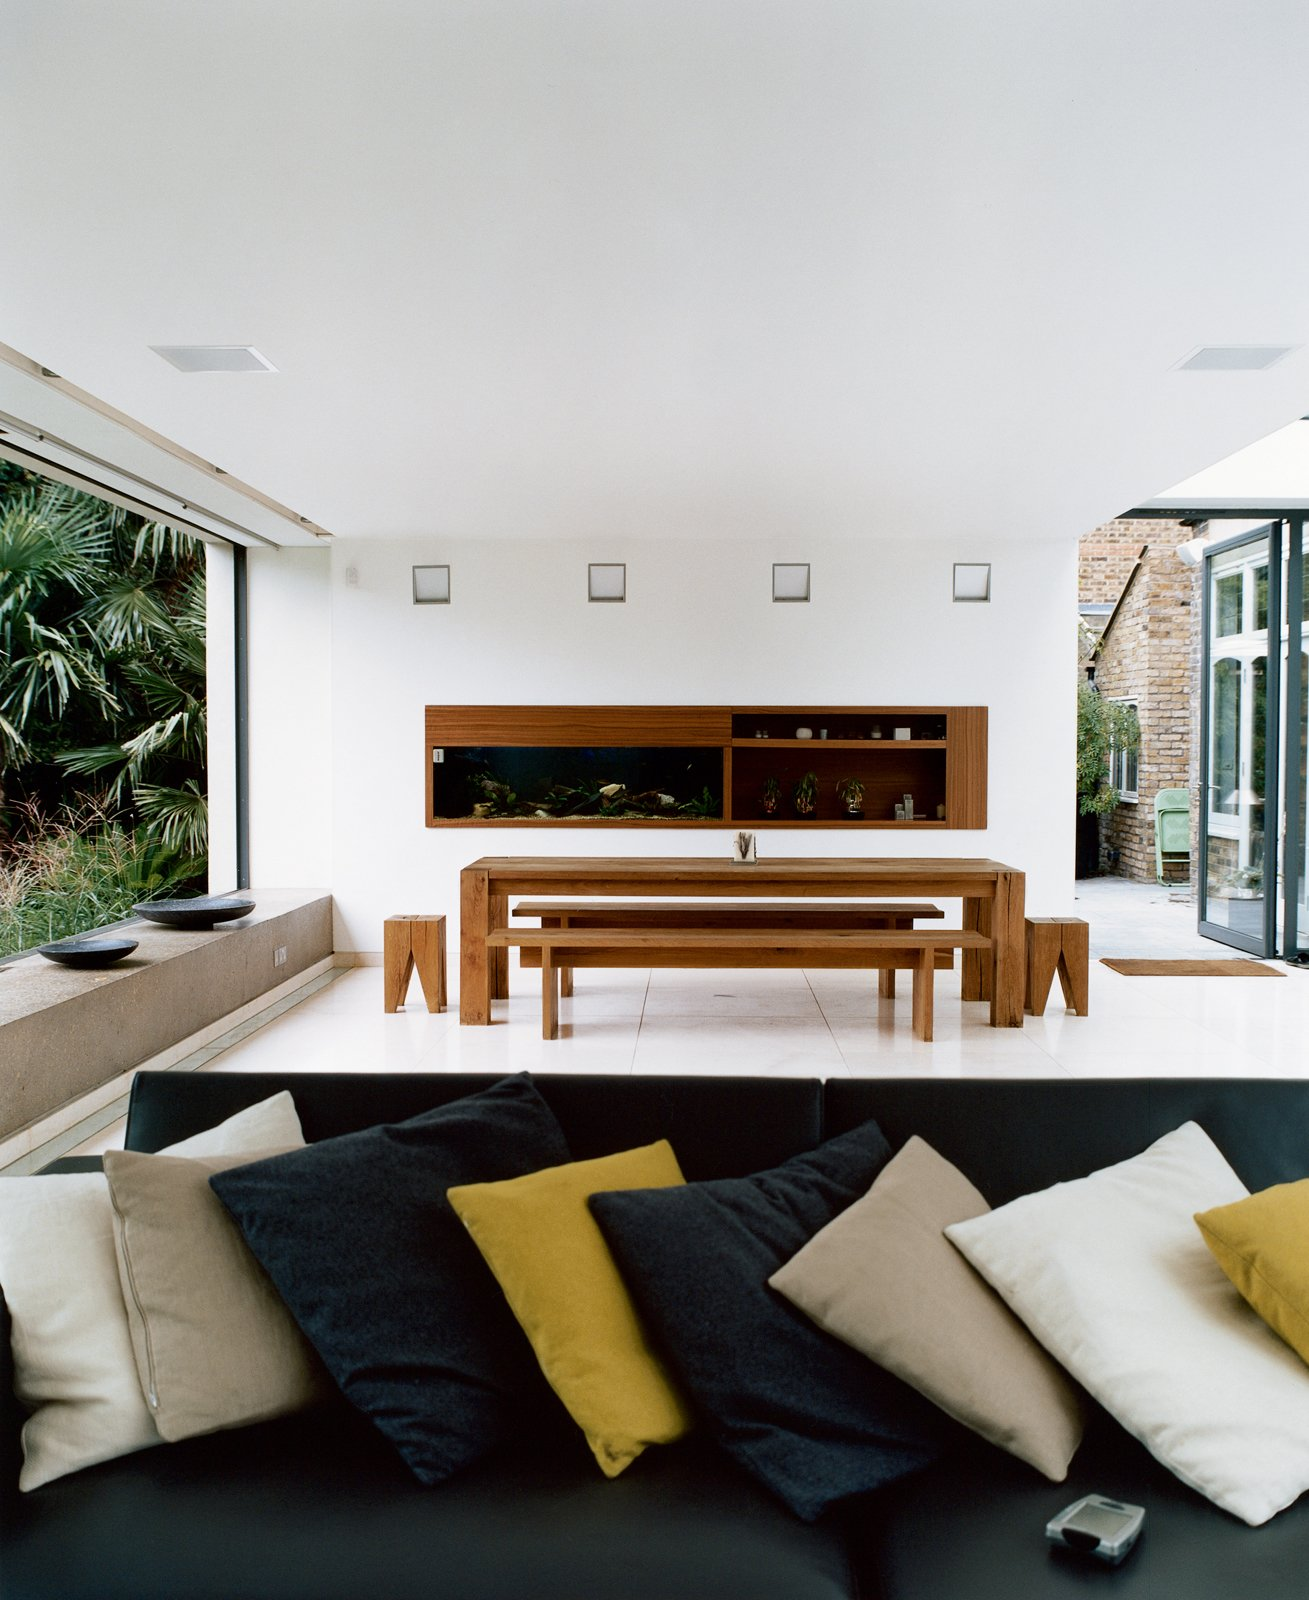 The new space was conceived as a blank canvas so that the decidedly nontraditional English garden—a large lawn bordered by exotic palms, bamboos, ferns, and other flamboyant foliage inspired by a recent holiday to Australia—could be the focal point. The minimalist dining table, benches, and stools are by e15.